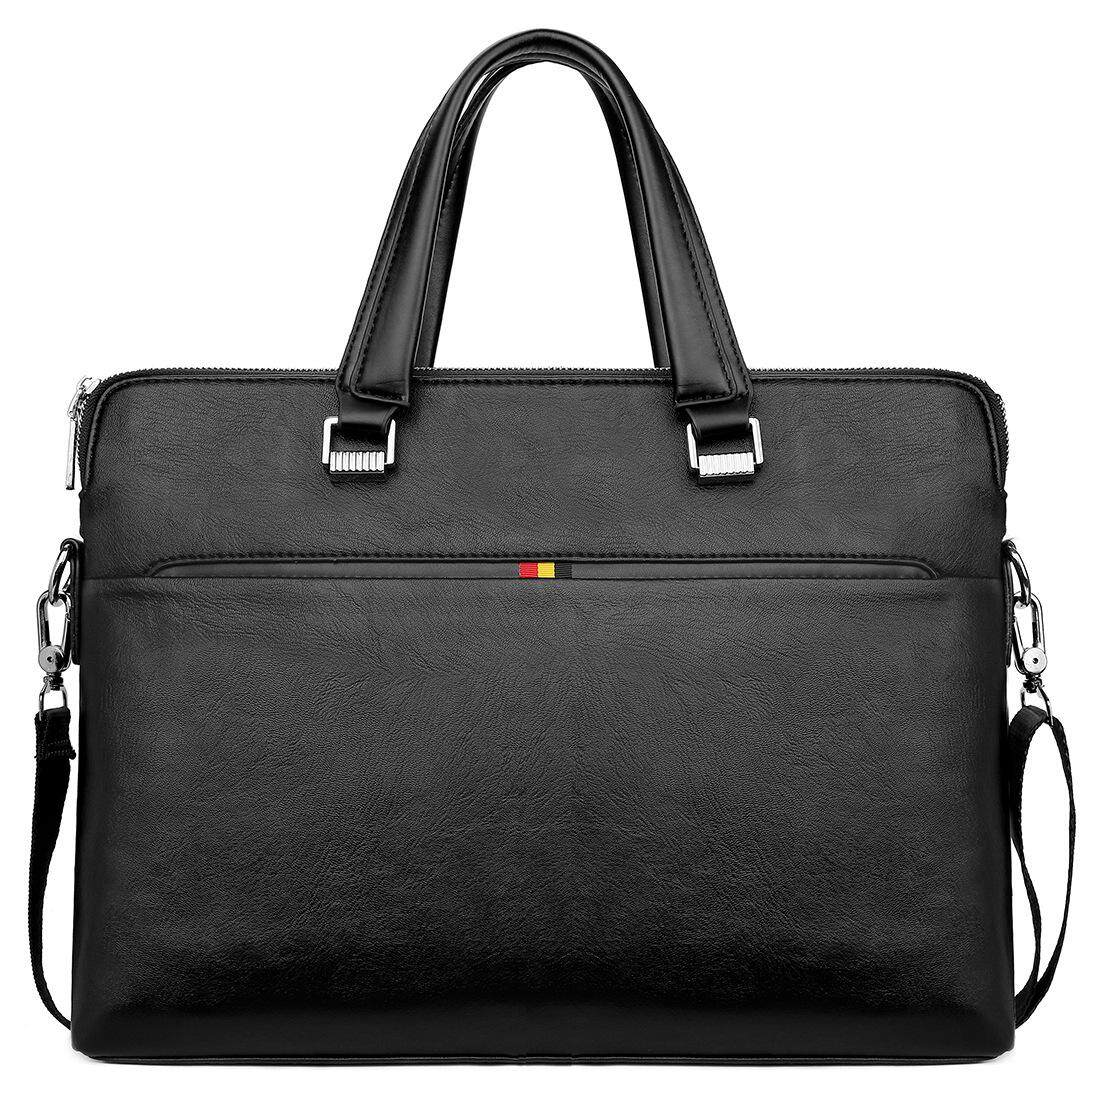 Lordwey Simple Design Leisure Mens Leather Laptop Handbag Casual Business Man Briefcase Computer Shoulder Bags 1119